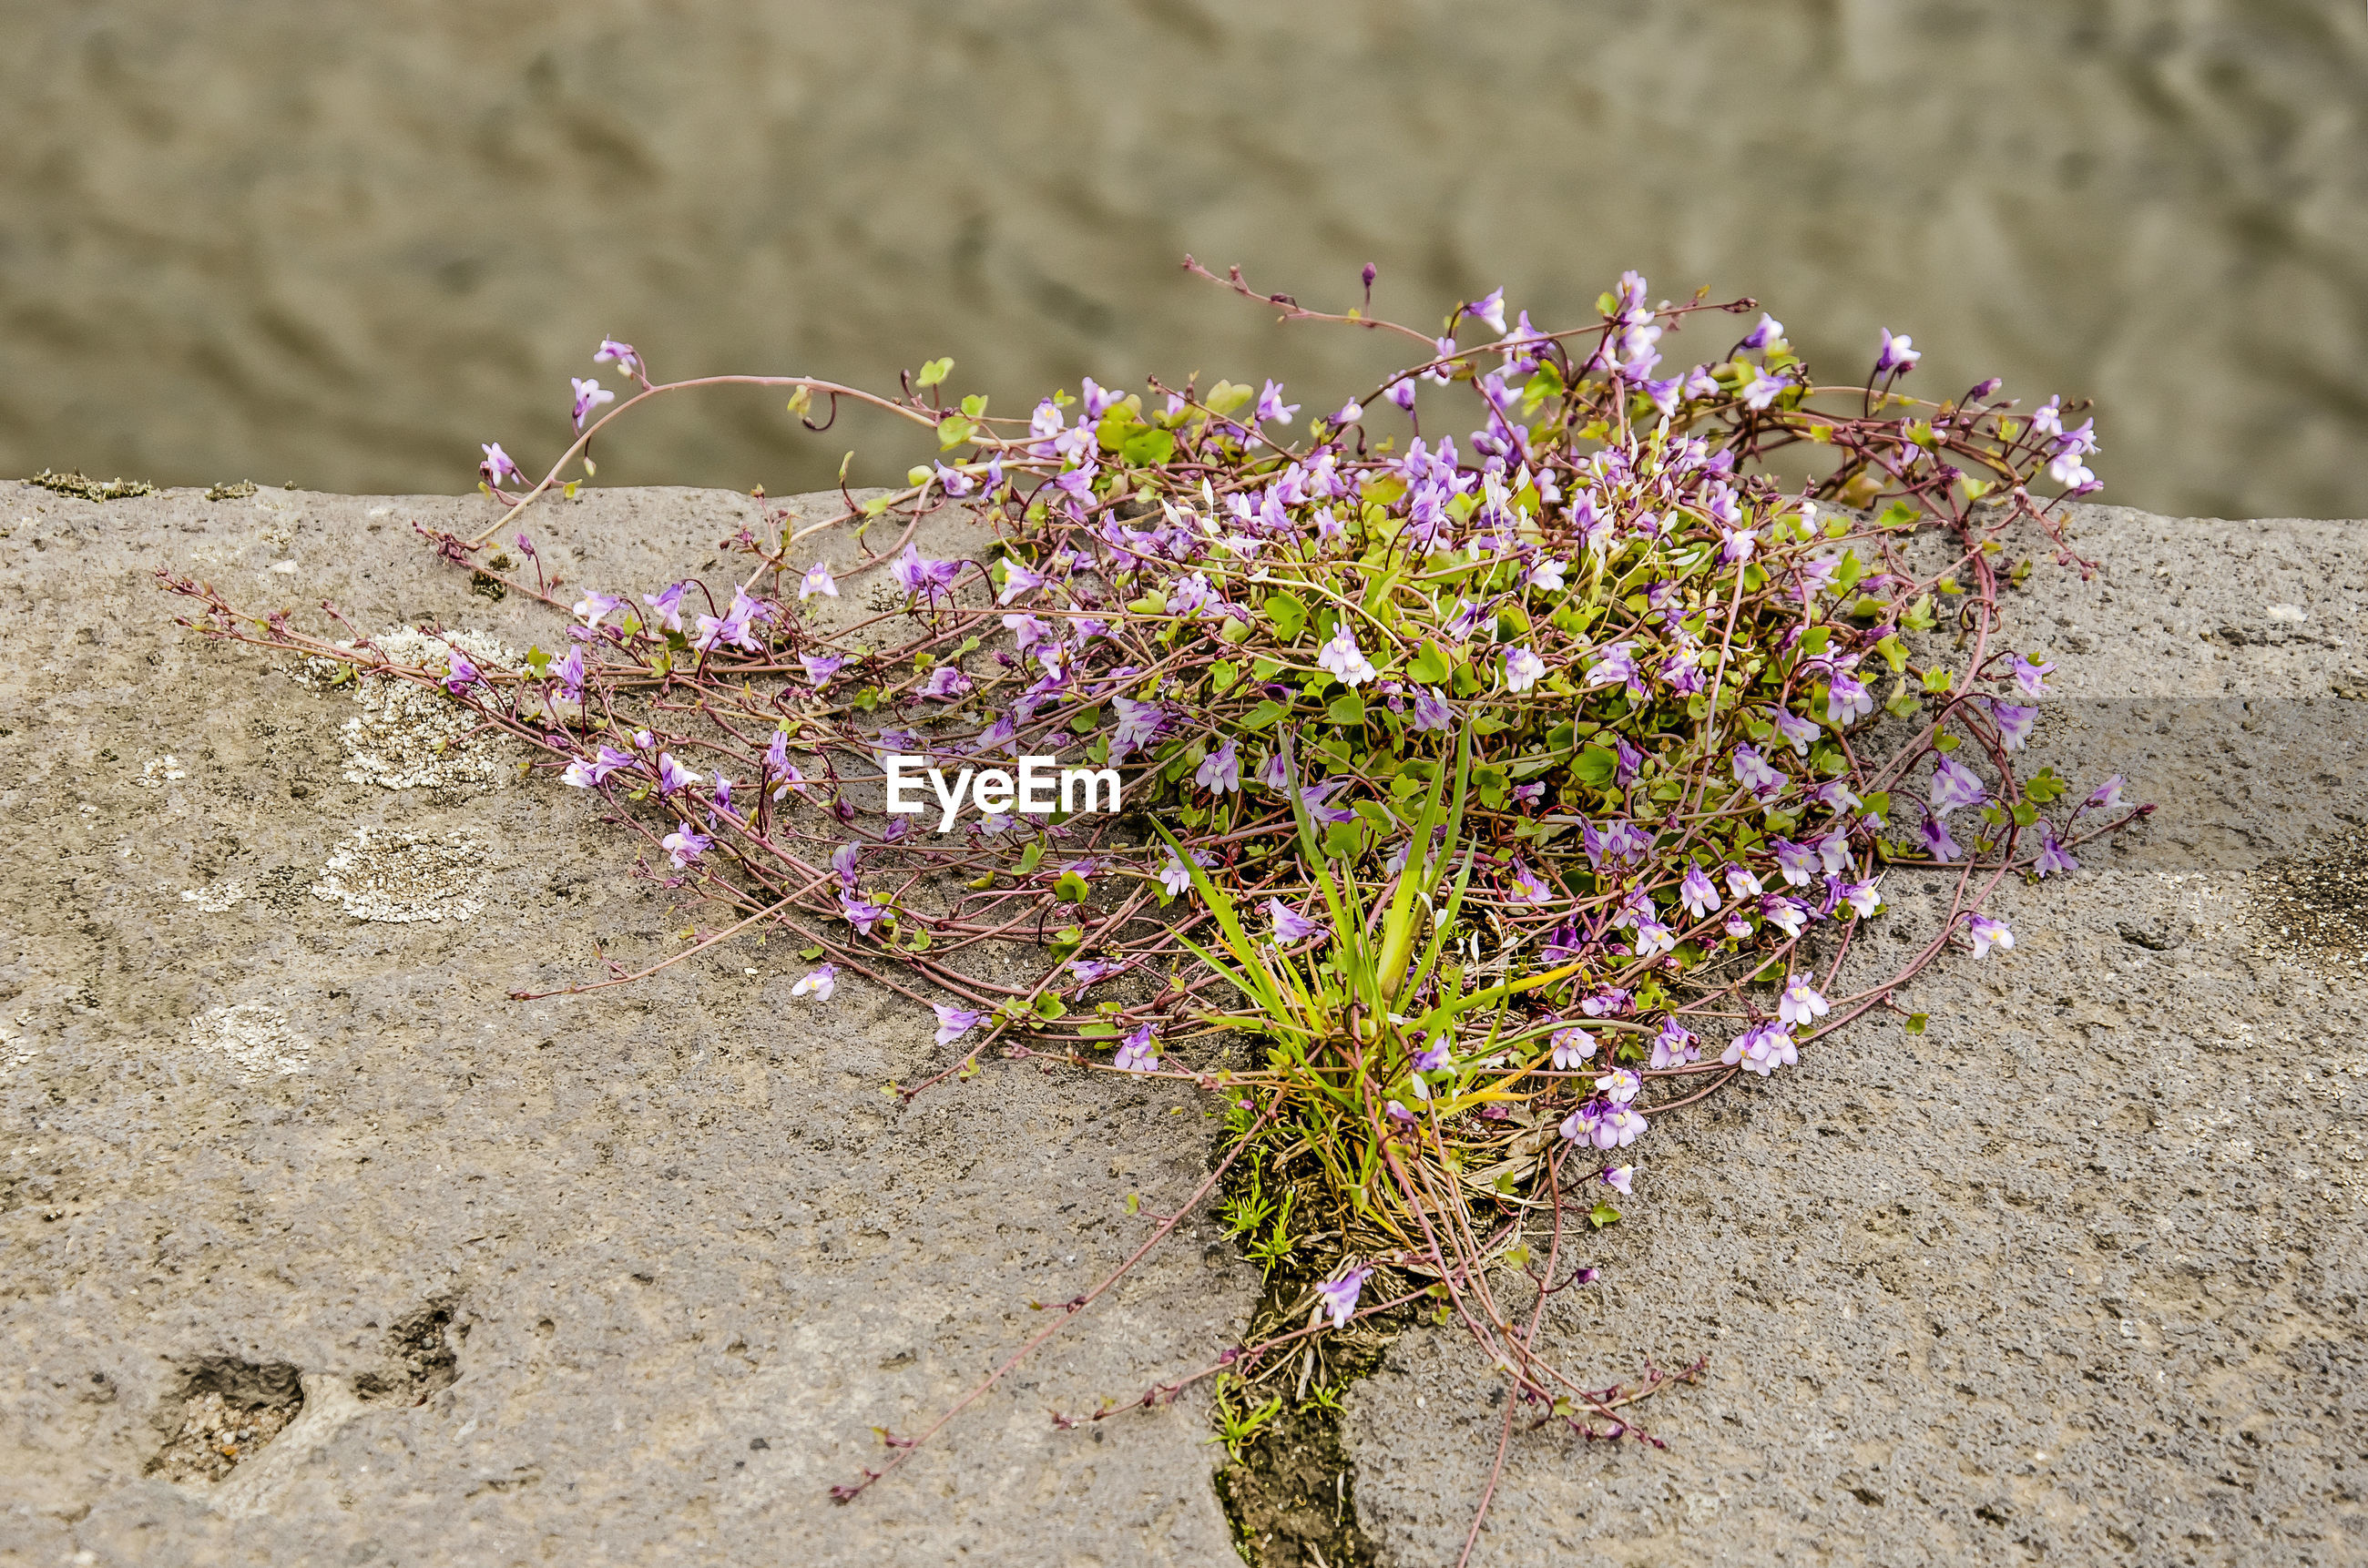 CLOSE-UP OF PURPLE FLOWERING PLANTS ON SAND